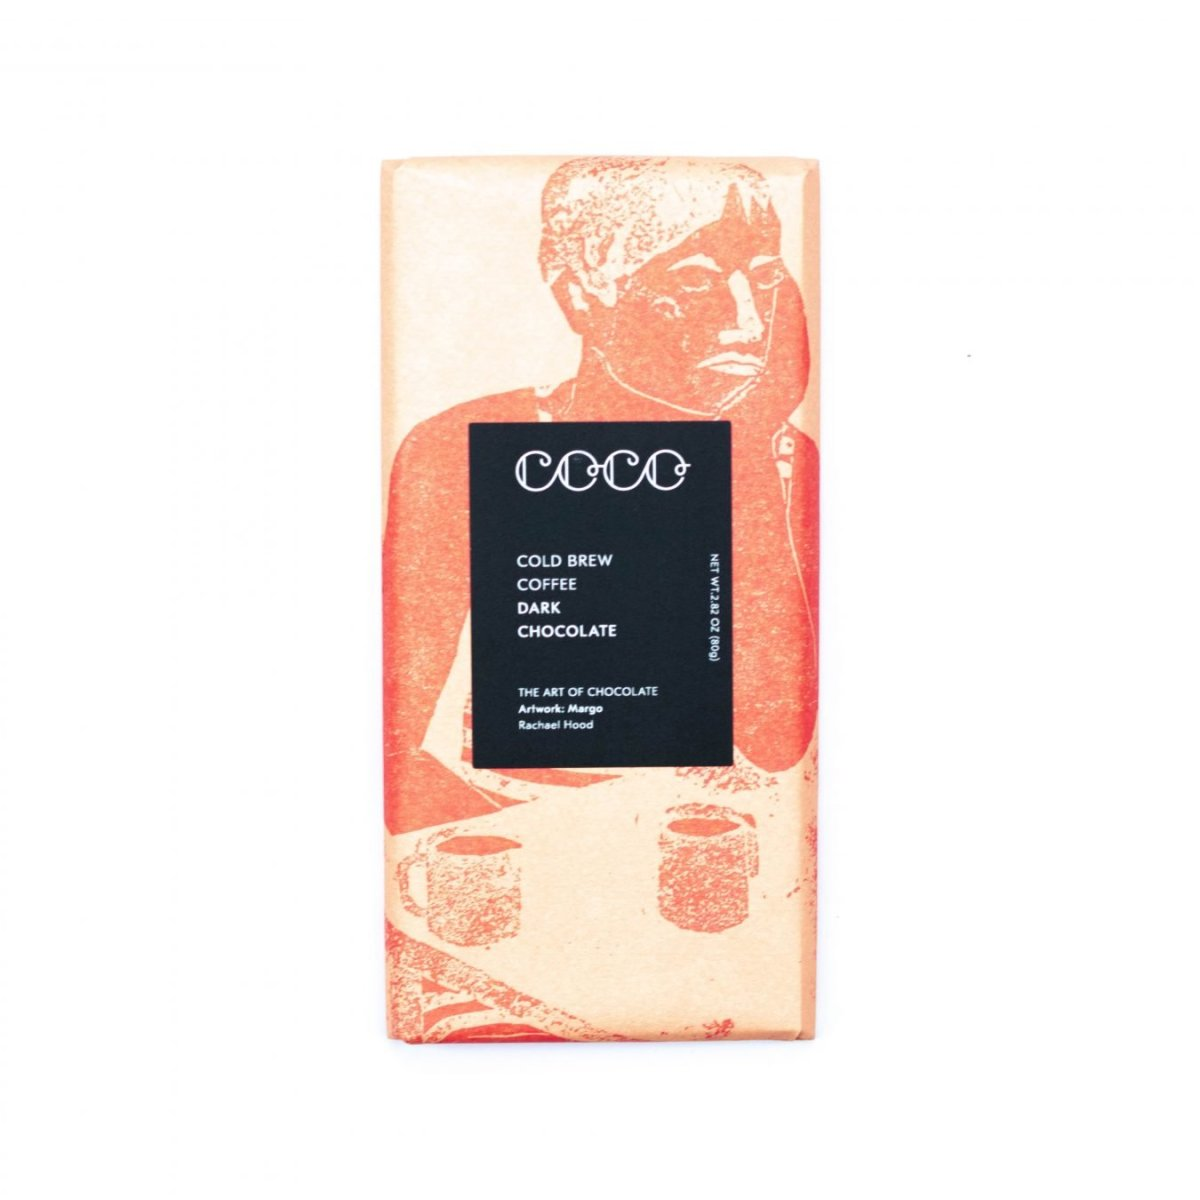 Coco Chocolate Cold Brew Chocolate bar